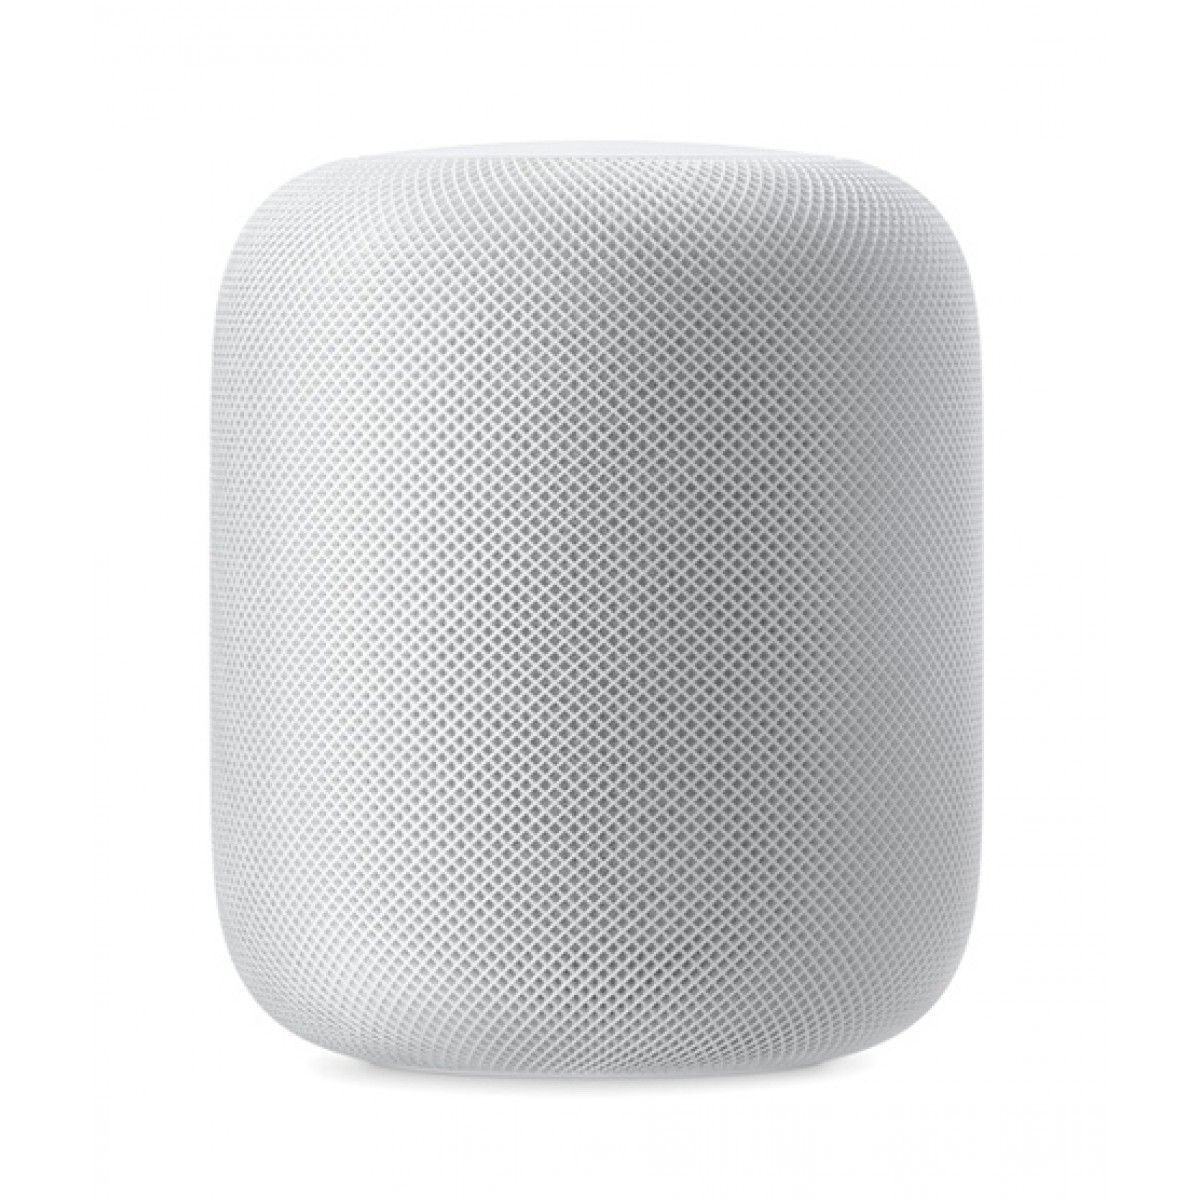 Apple MQHV2 HomePod White